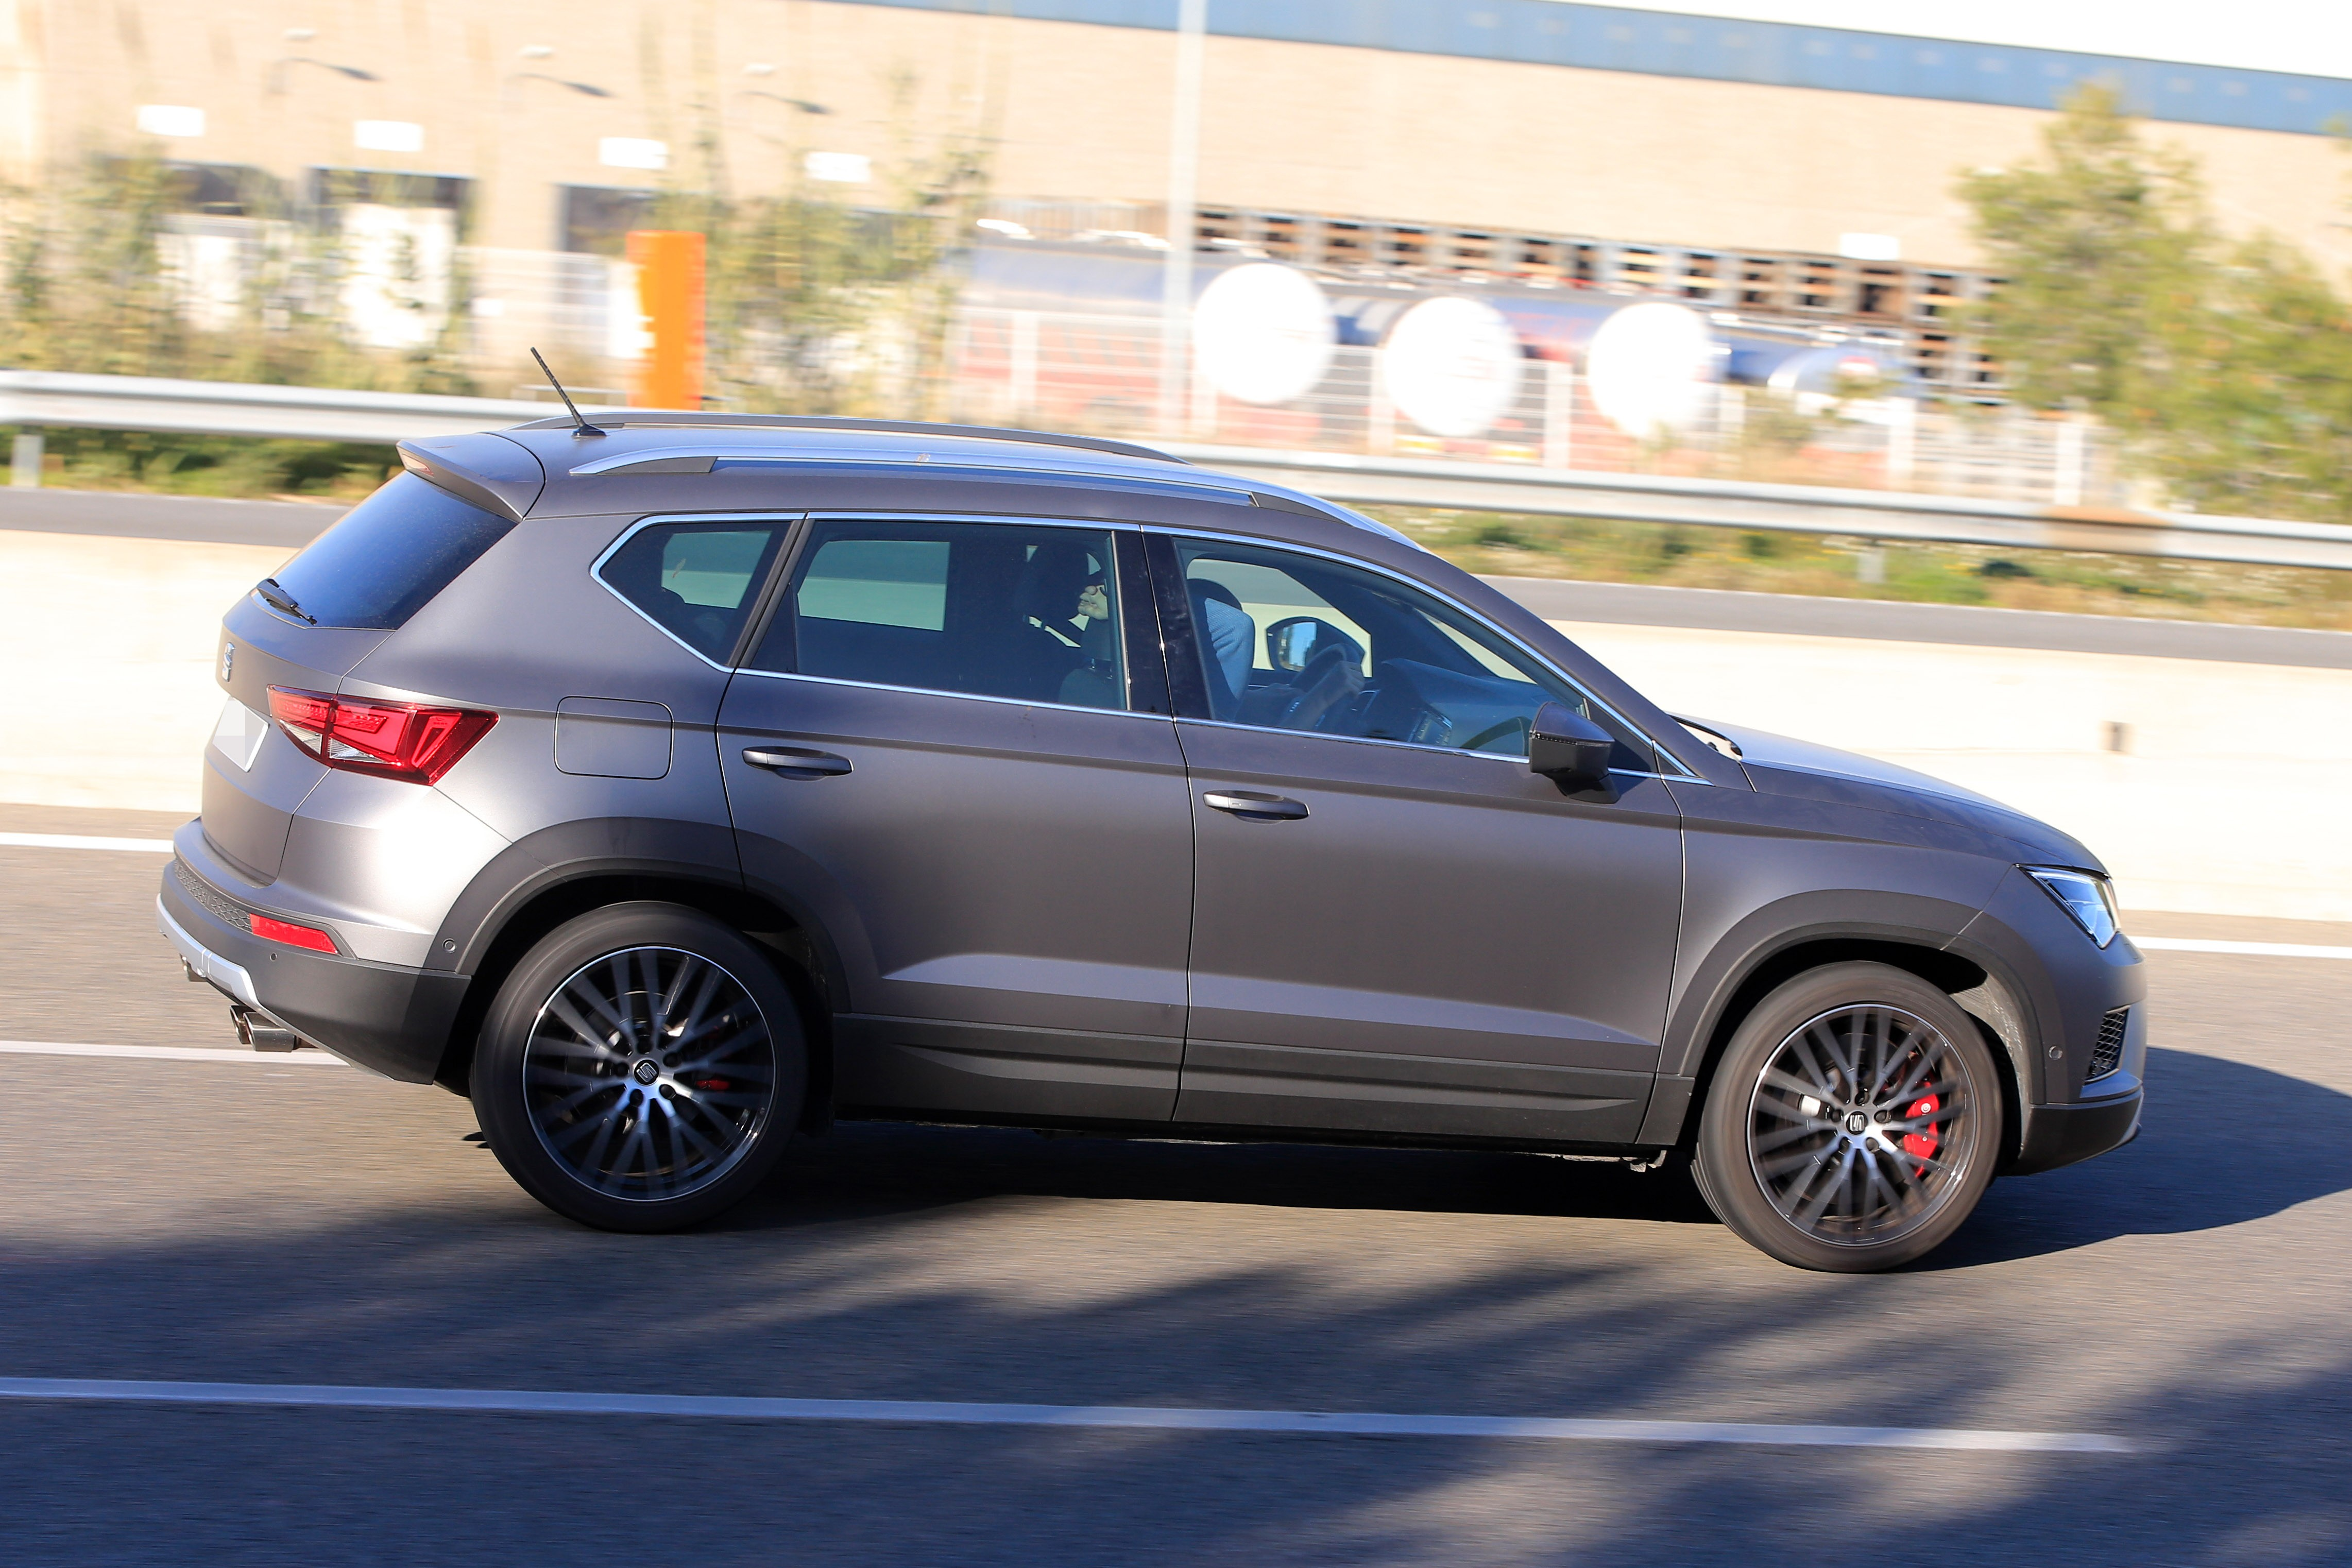 2016 - [Seat] Ateca - Page 21 Seat-ateca-cupra-spied-in-full-view-while-testing-in-spain_6